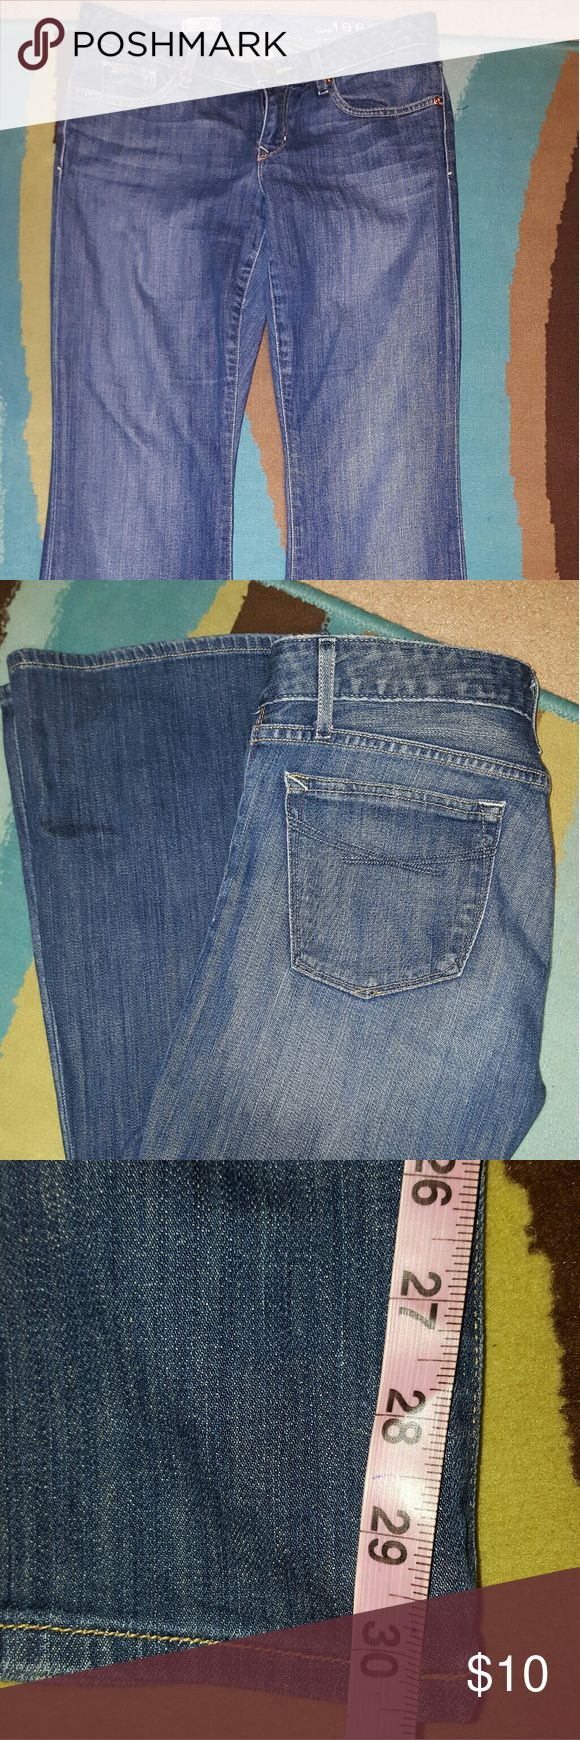 GAP CURVY JEANS SZ 27/4A GREAT CONDITION!! PLEASE FEEL FREE TO MAKE AN OFFER!! GAP Jeans Flare & Wide Leg